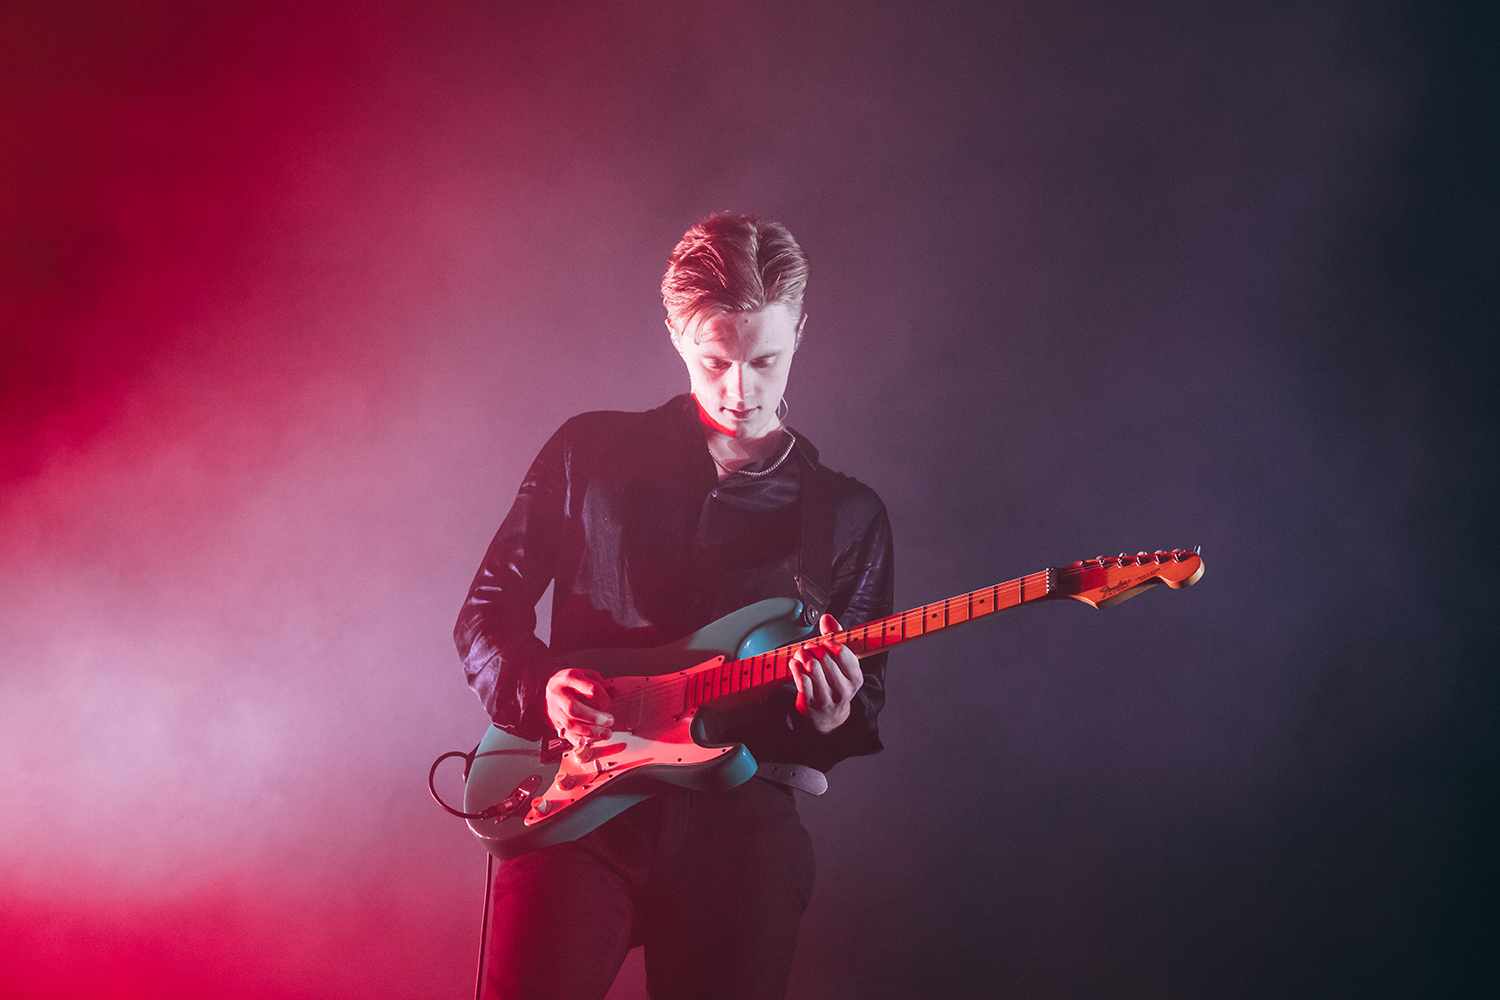 pale waves guitarist red and blue performing at Birmingham arena